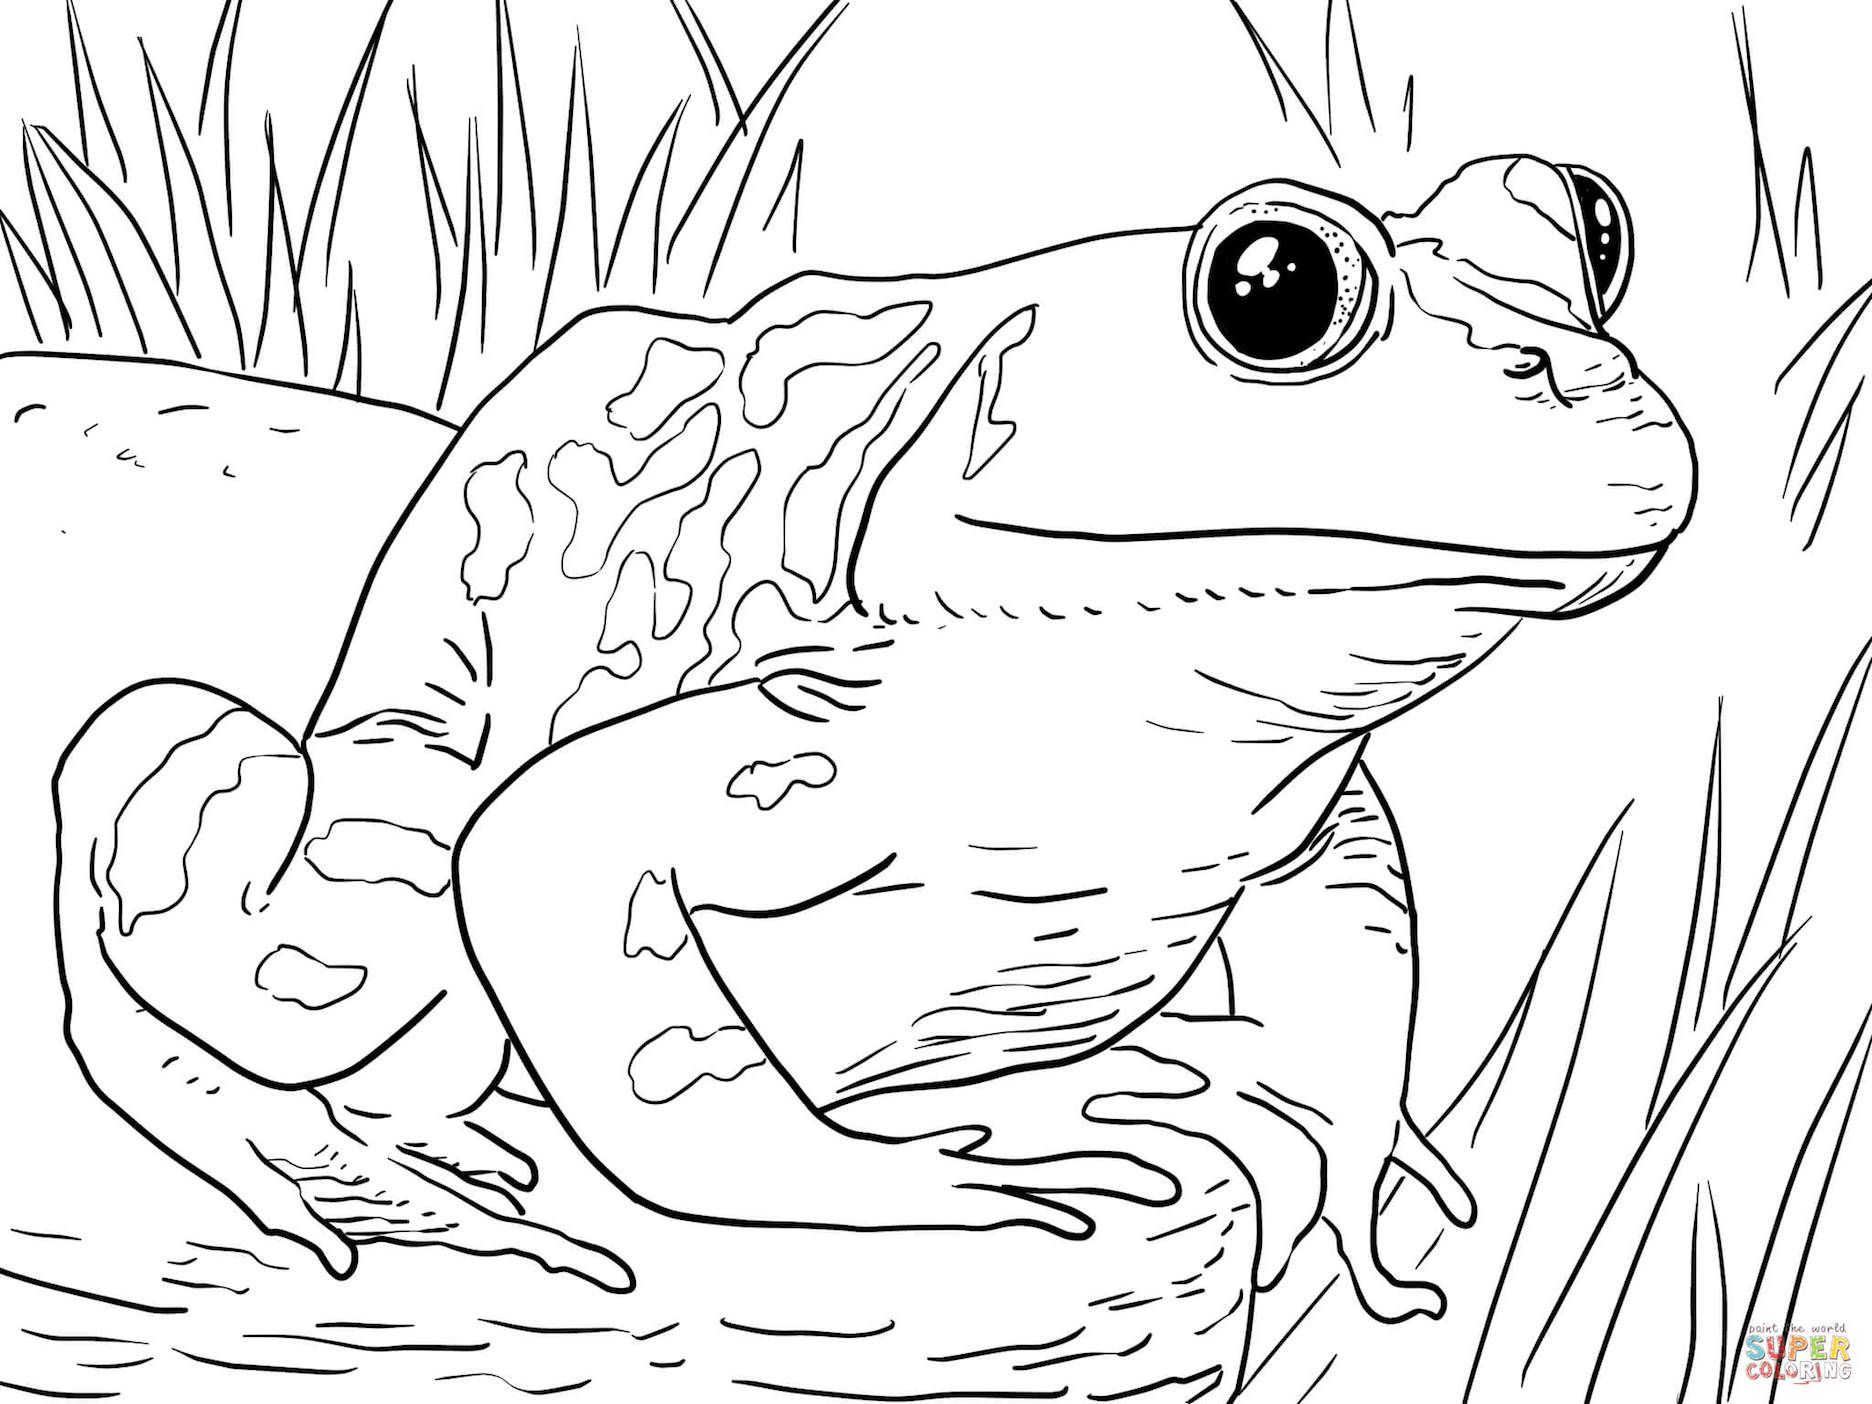 coloring images of frog frog coloring pages clipart and other free printable of images frog coloring